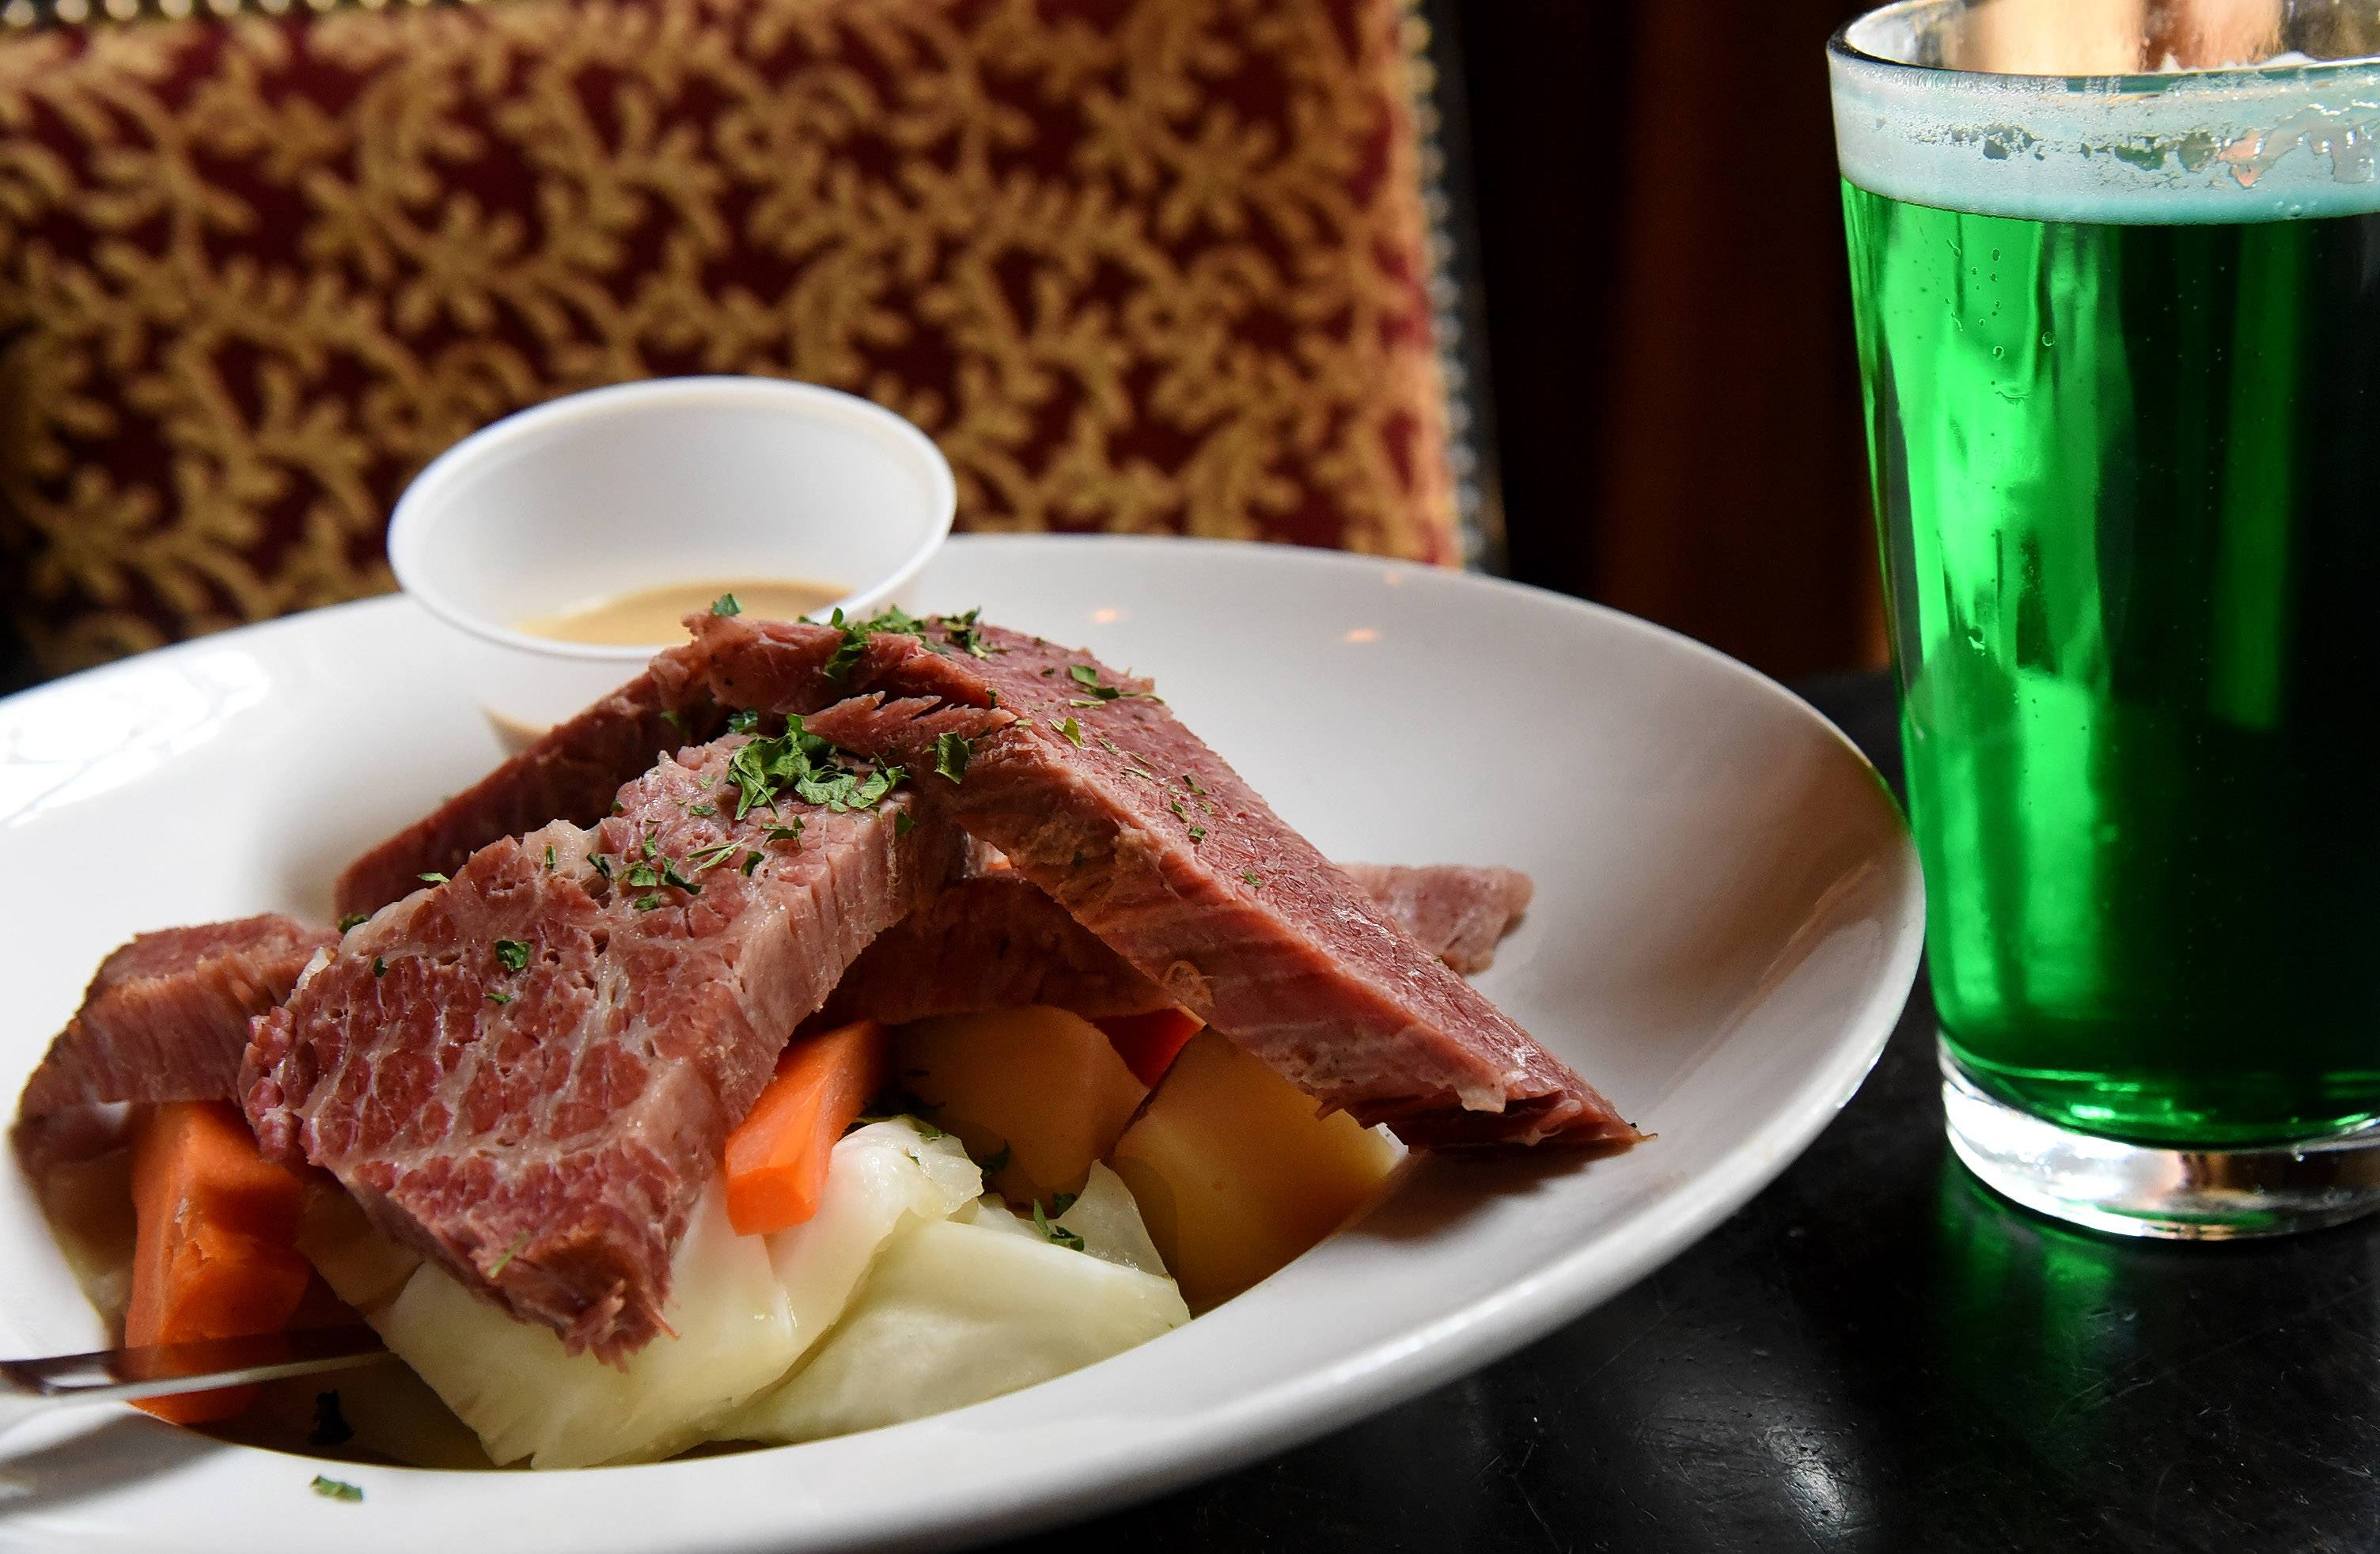 Pair corned beef and cabbage with a green beer St. Patrick's Day weekend at McGonigal's Pub in Barrington.